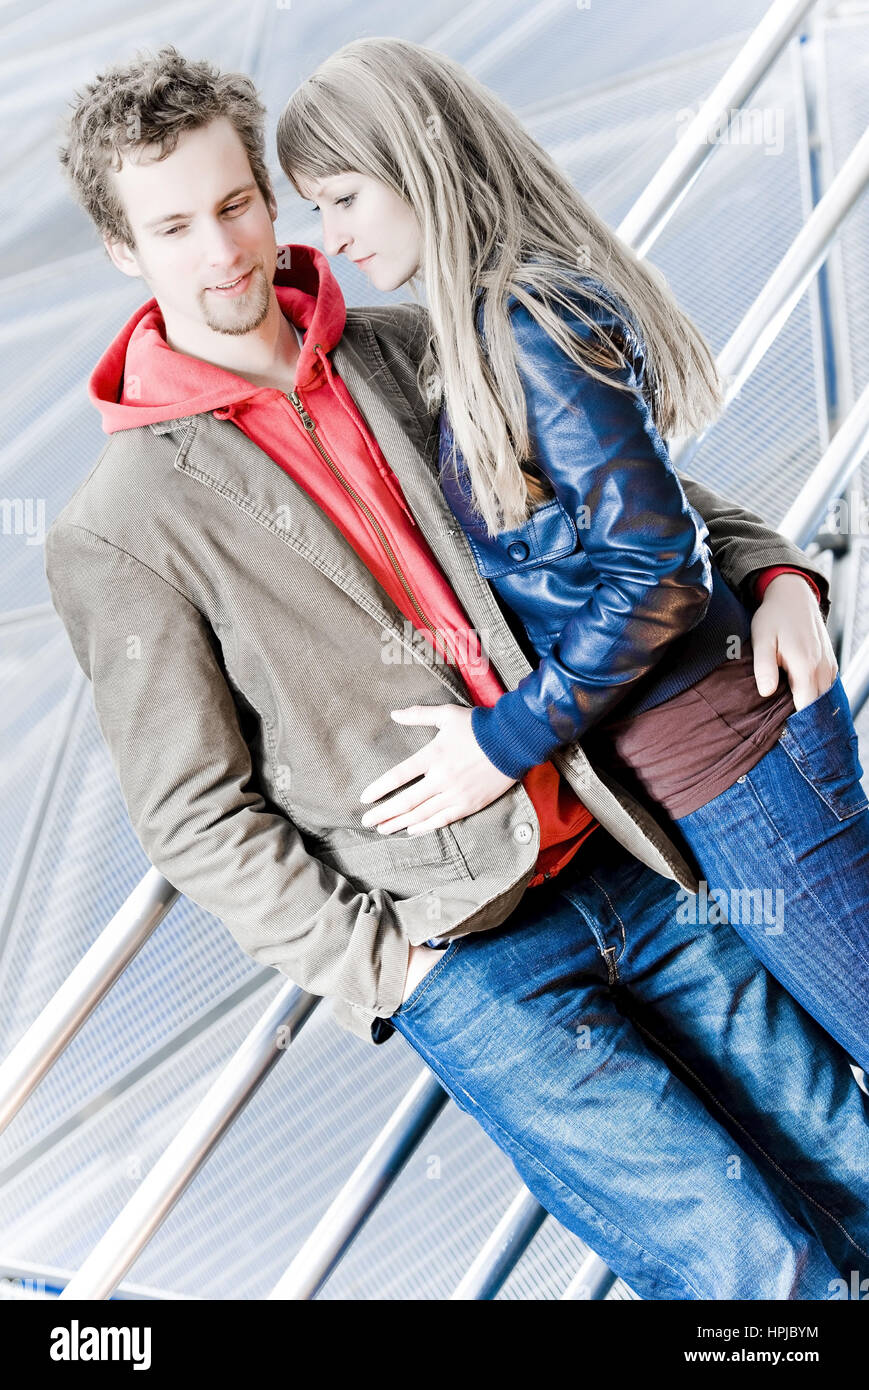 Model released , Junges Paar - young couple Stock Photo